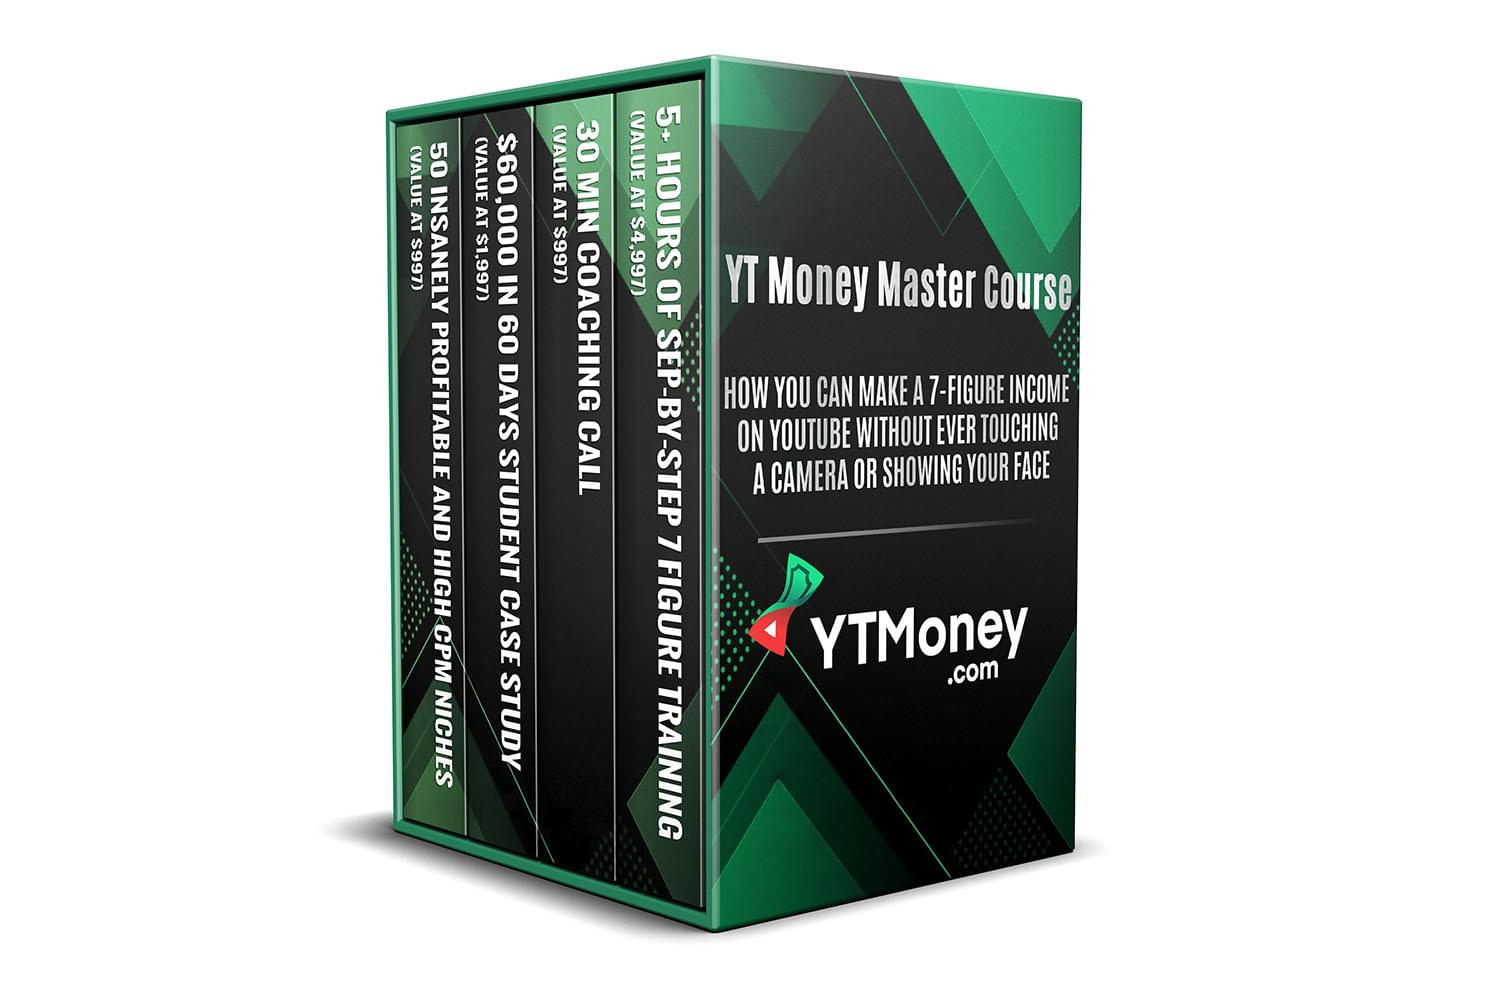 [SUPER HOT SHARE] YouTube Money 2020 Download